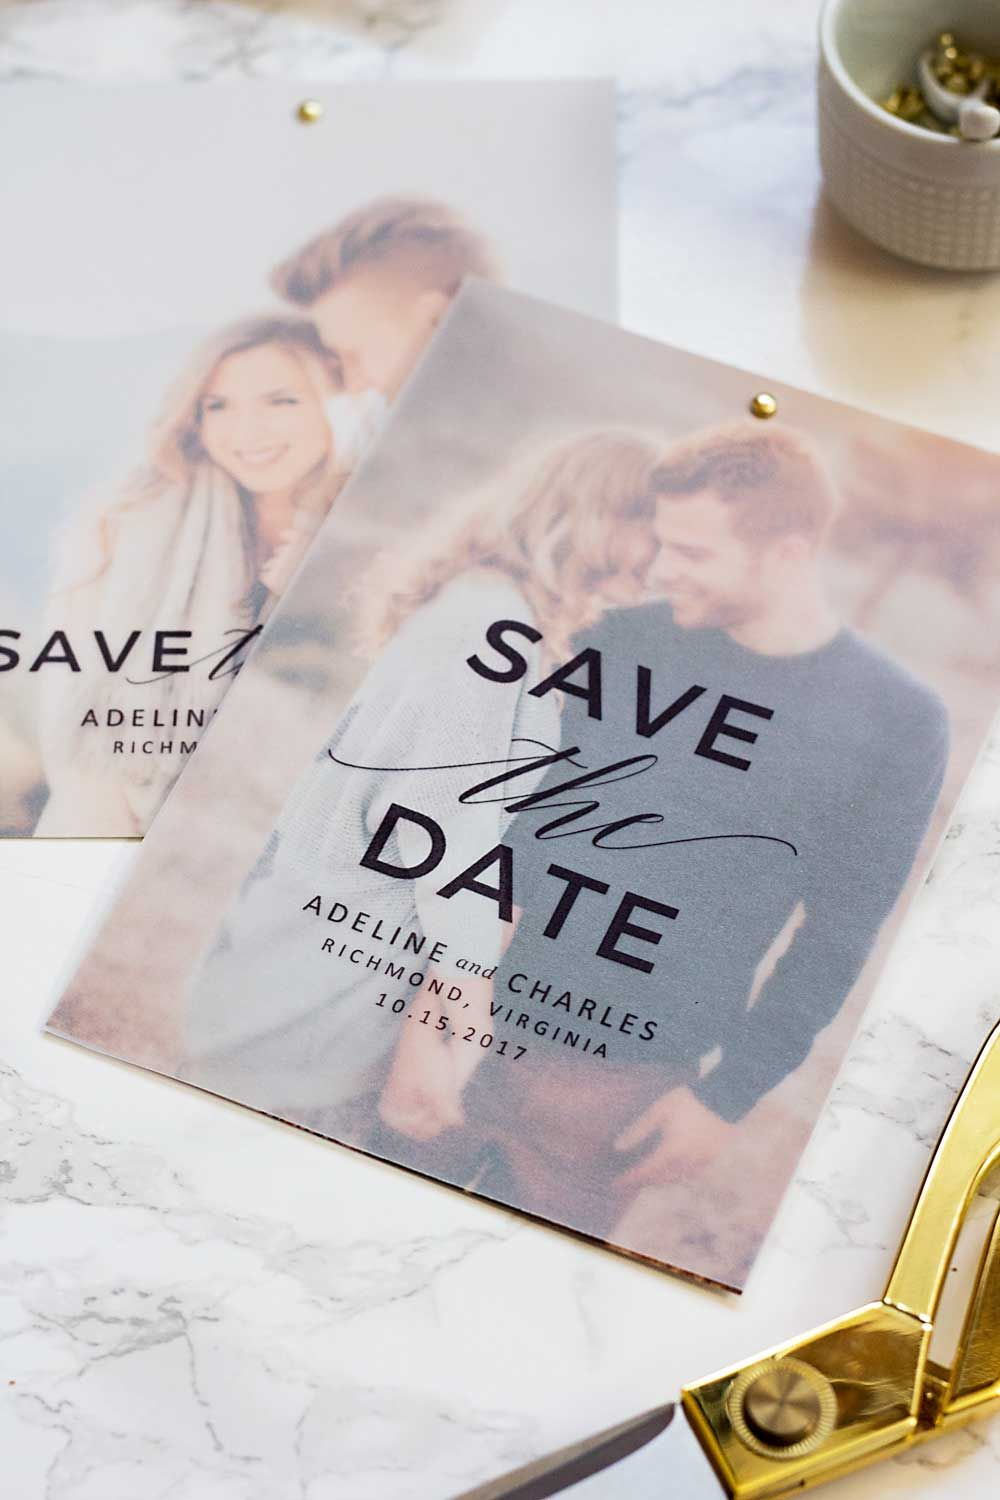 wedding planning checklist spreadsheet free%0A Wedding planning    Make these gorgeous save the dates at home with this free  save the date template